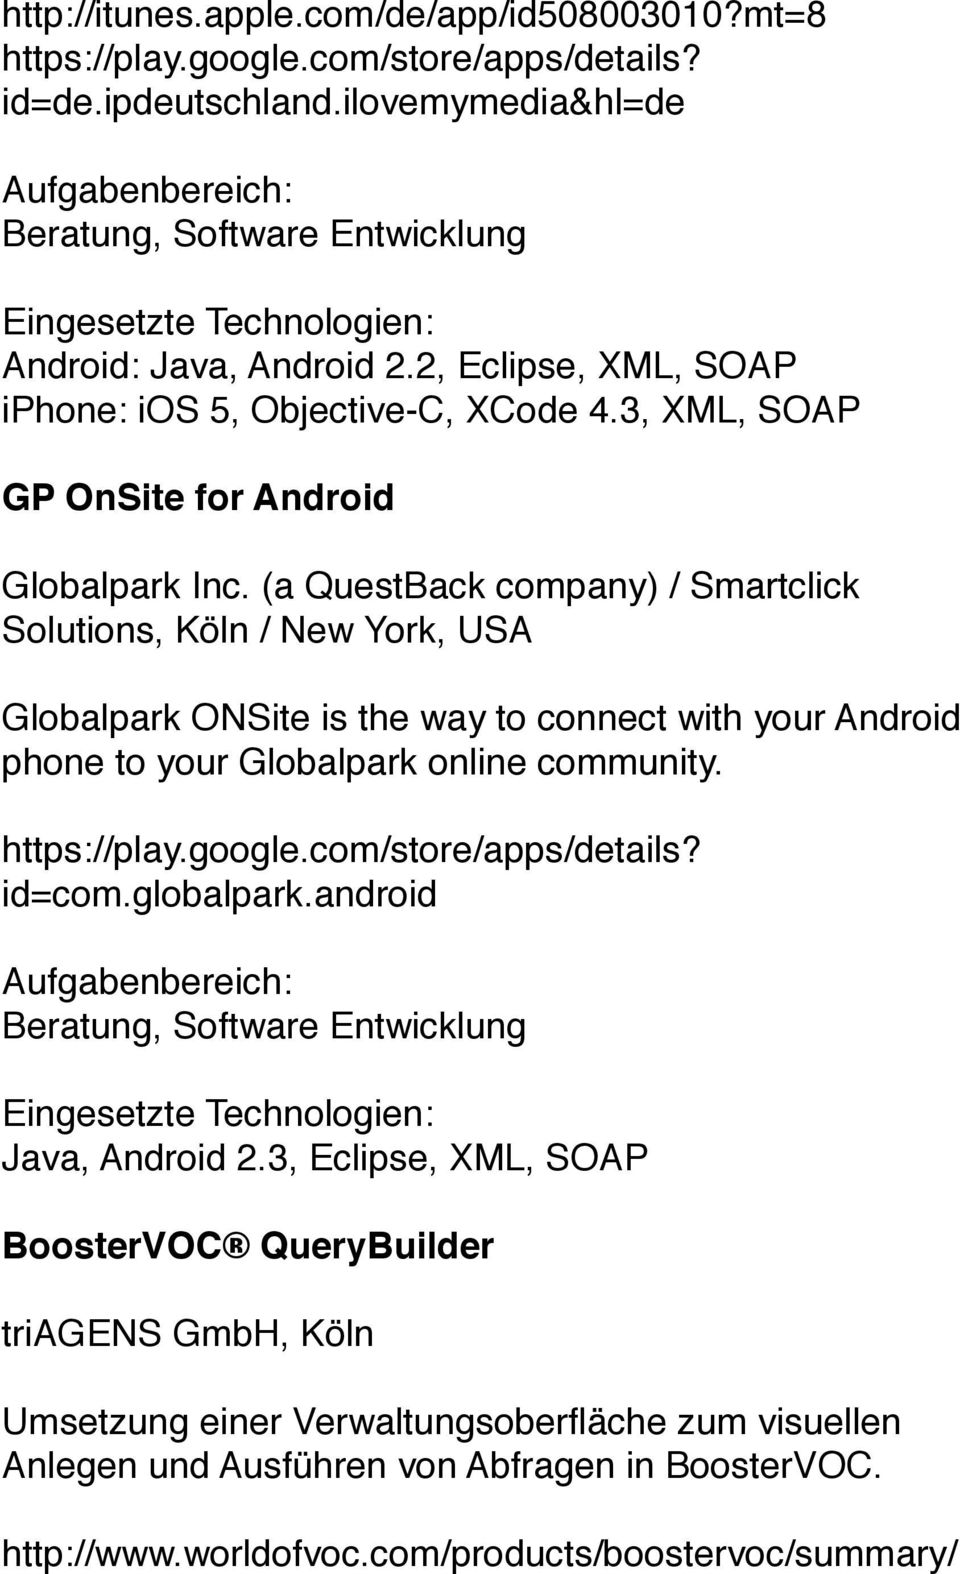 (a QuestBack company) / Smartclick Solutions, Köln / New York, USA Globalpark ONSite is the way to connect with your Android phone to your Globalpark online community. https://play.google.